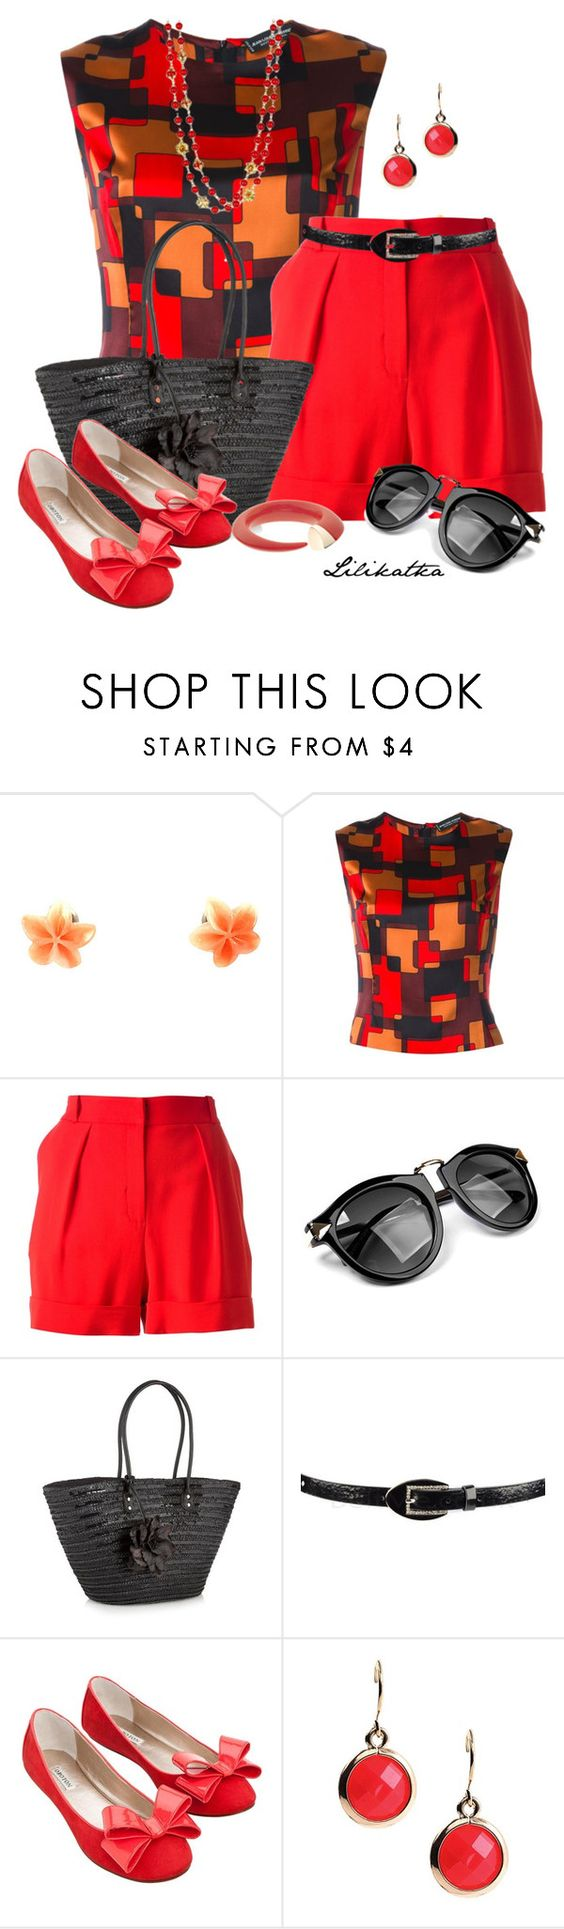 """""""Pivonka#1371/7"""" by lilikatka ❤ liked on Polyvore featuring Jean-Louis Scherrer, Lala Berlin, Beach Collection, Oroton, Anne Klein, Zooey and Shaun Leane"""